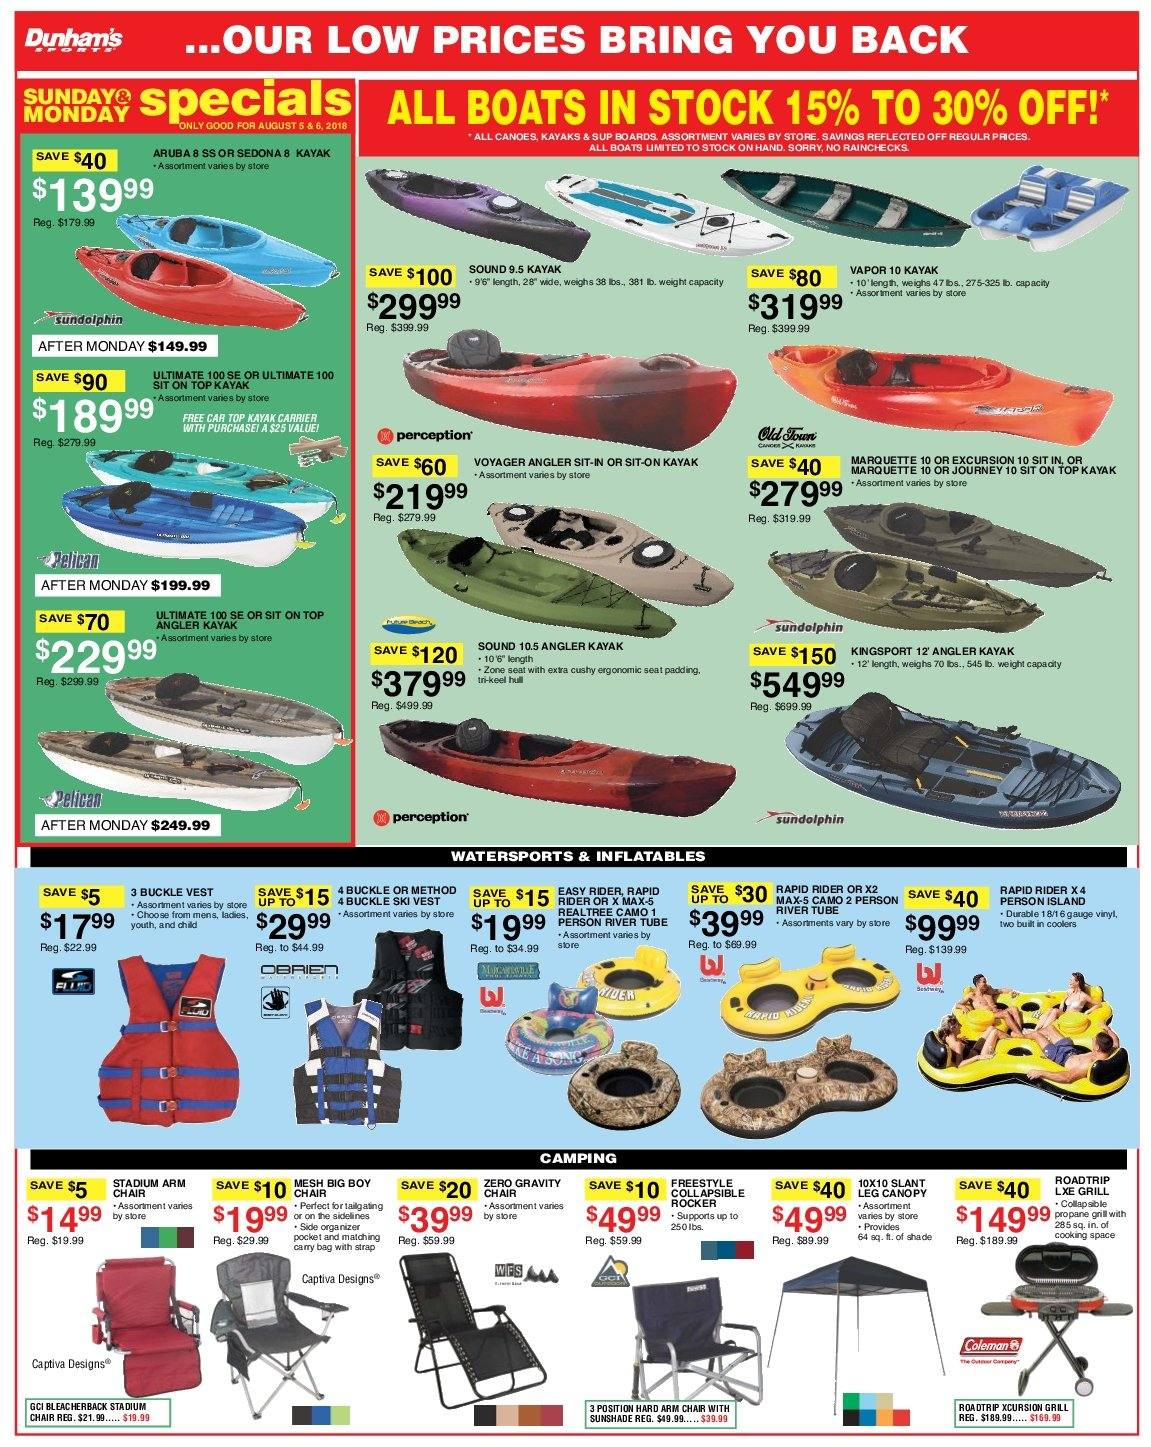 Dunham's Sports Flyer - 08.04.2018 - 08.09.2018 - Sales products - arm chair, canopy, grill, chair, kayak. Page 7.